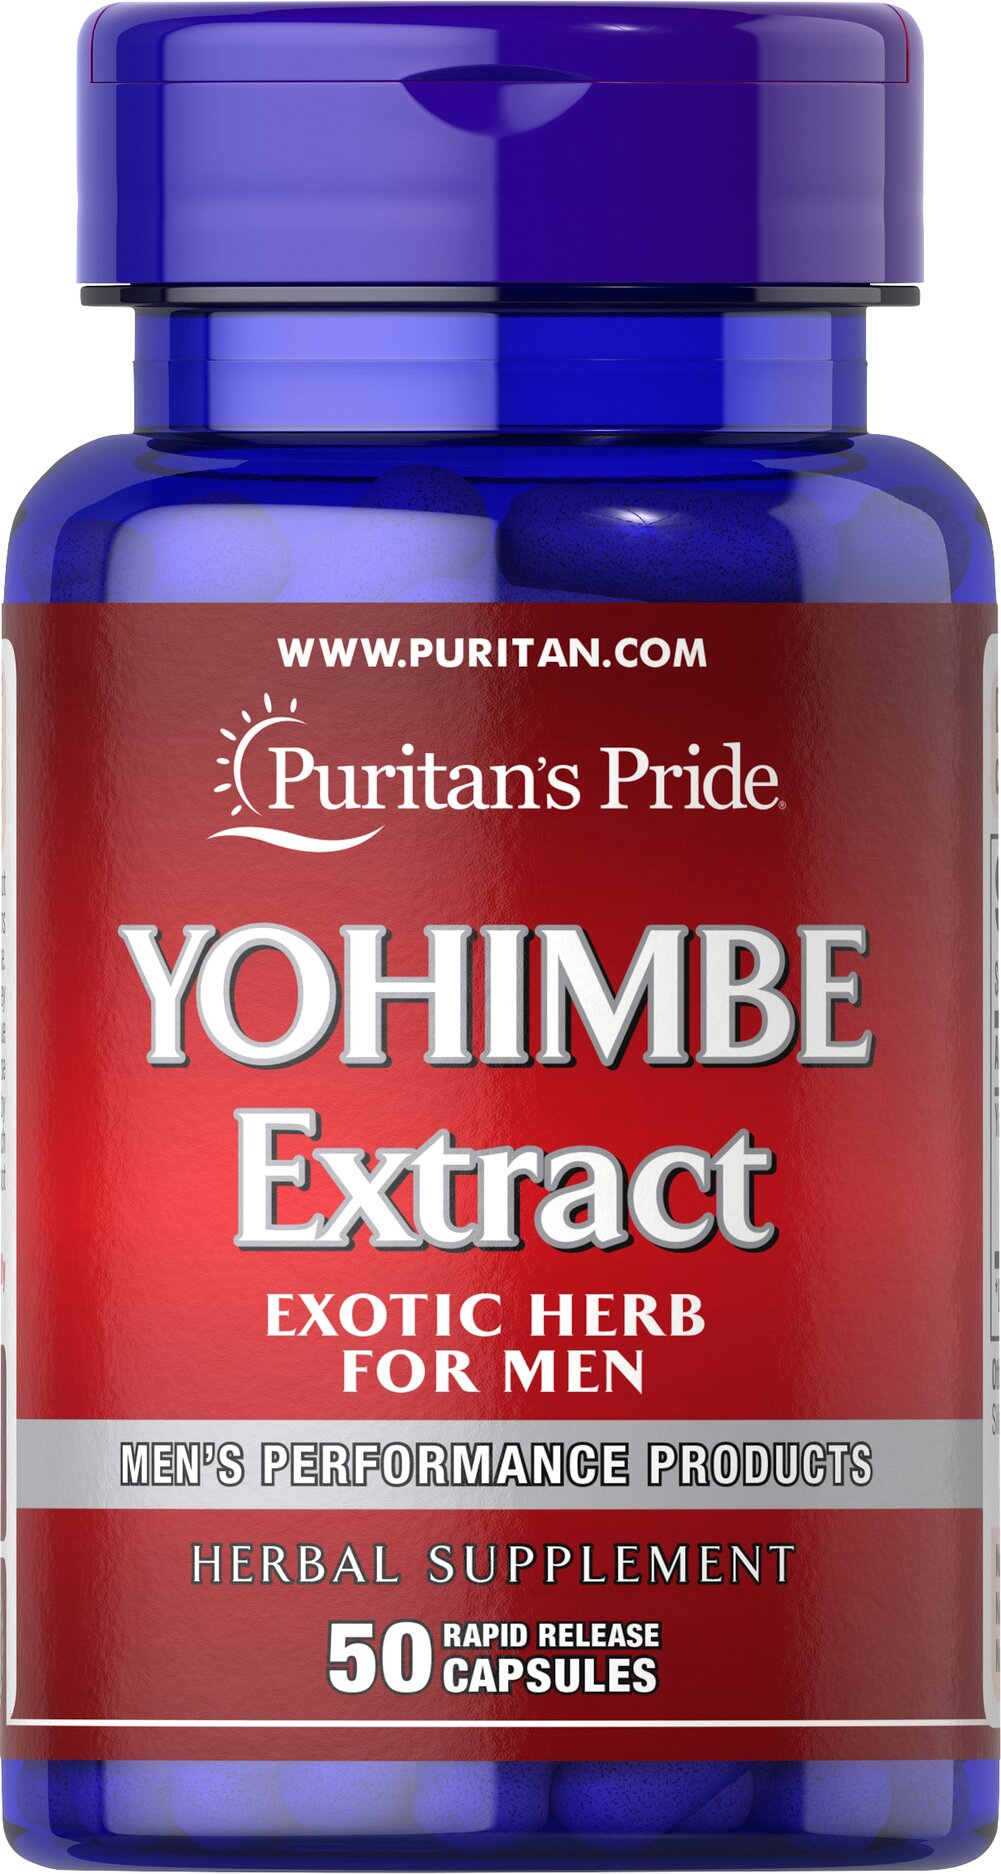 Yohimbe 2000 mg <p>2000 mg 4:1 Extract</p><p>Discover the exotic flavor of the African jungle with Yohimbe Bark. Derived from an African evergreen tree, Yohimbe was used by warriors preparing for battle.</p> 50 Capsules 2000 mg $11.99